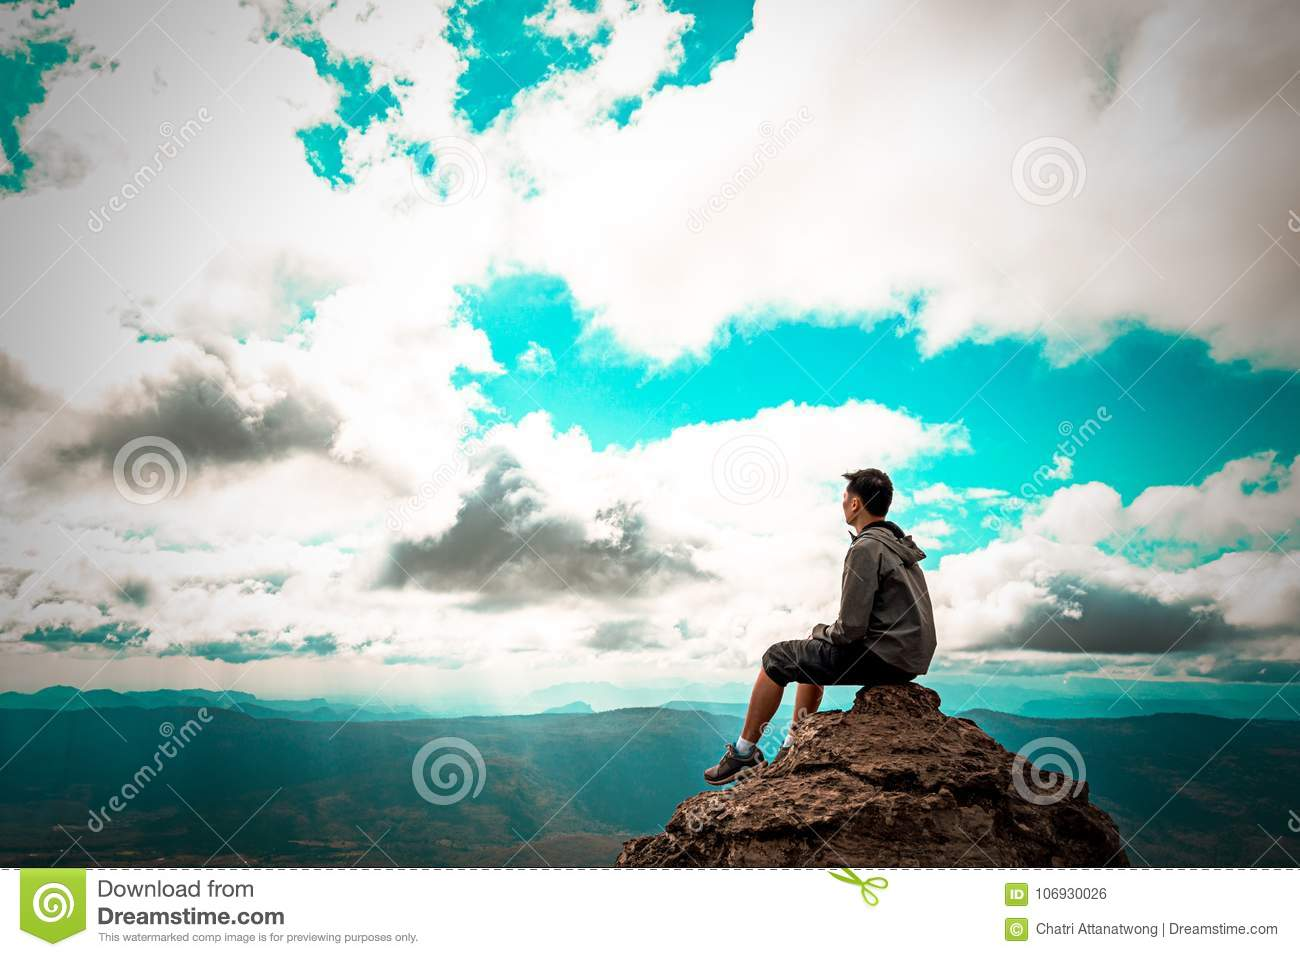 Man Sitting On Rock At Top Of Mountain Looking To Sky Stock Photo Image Of Heaven Backdrop 106930026 Alone man loneliness nature clouds rocks